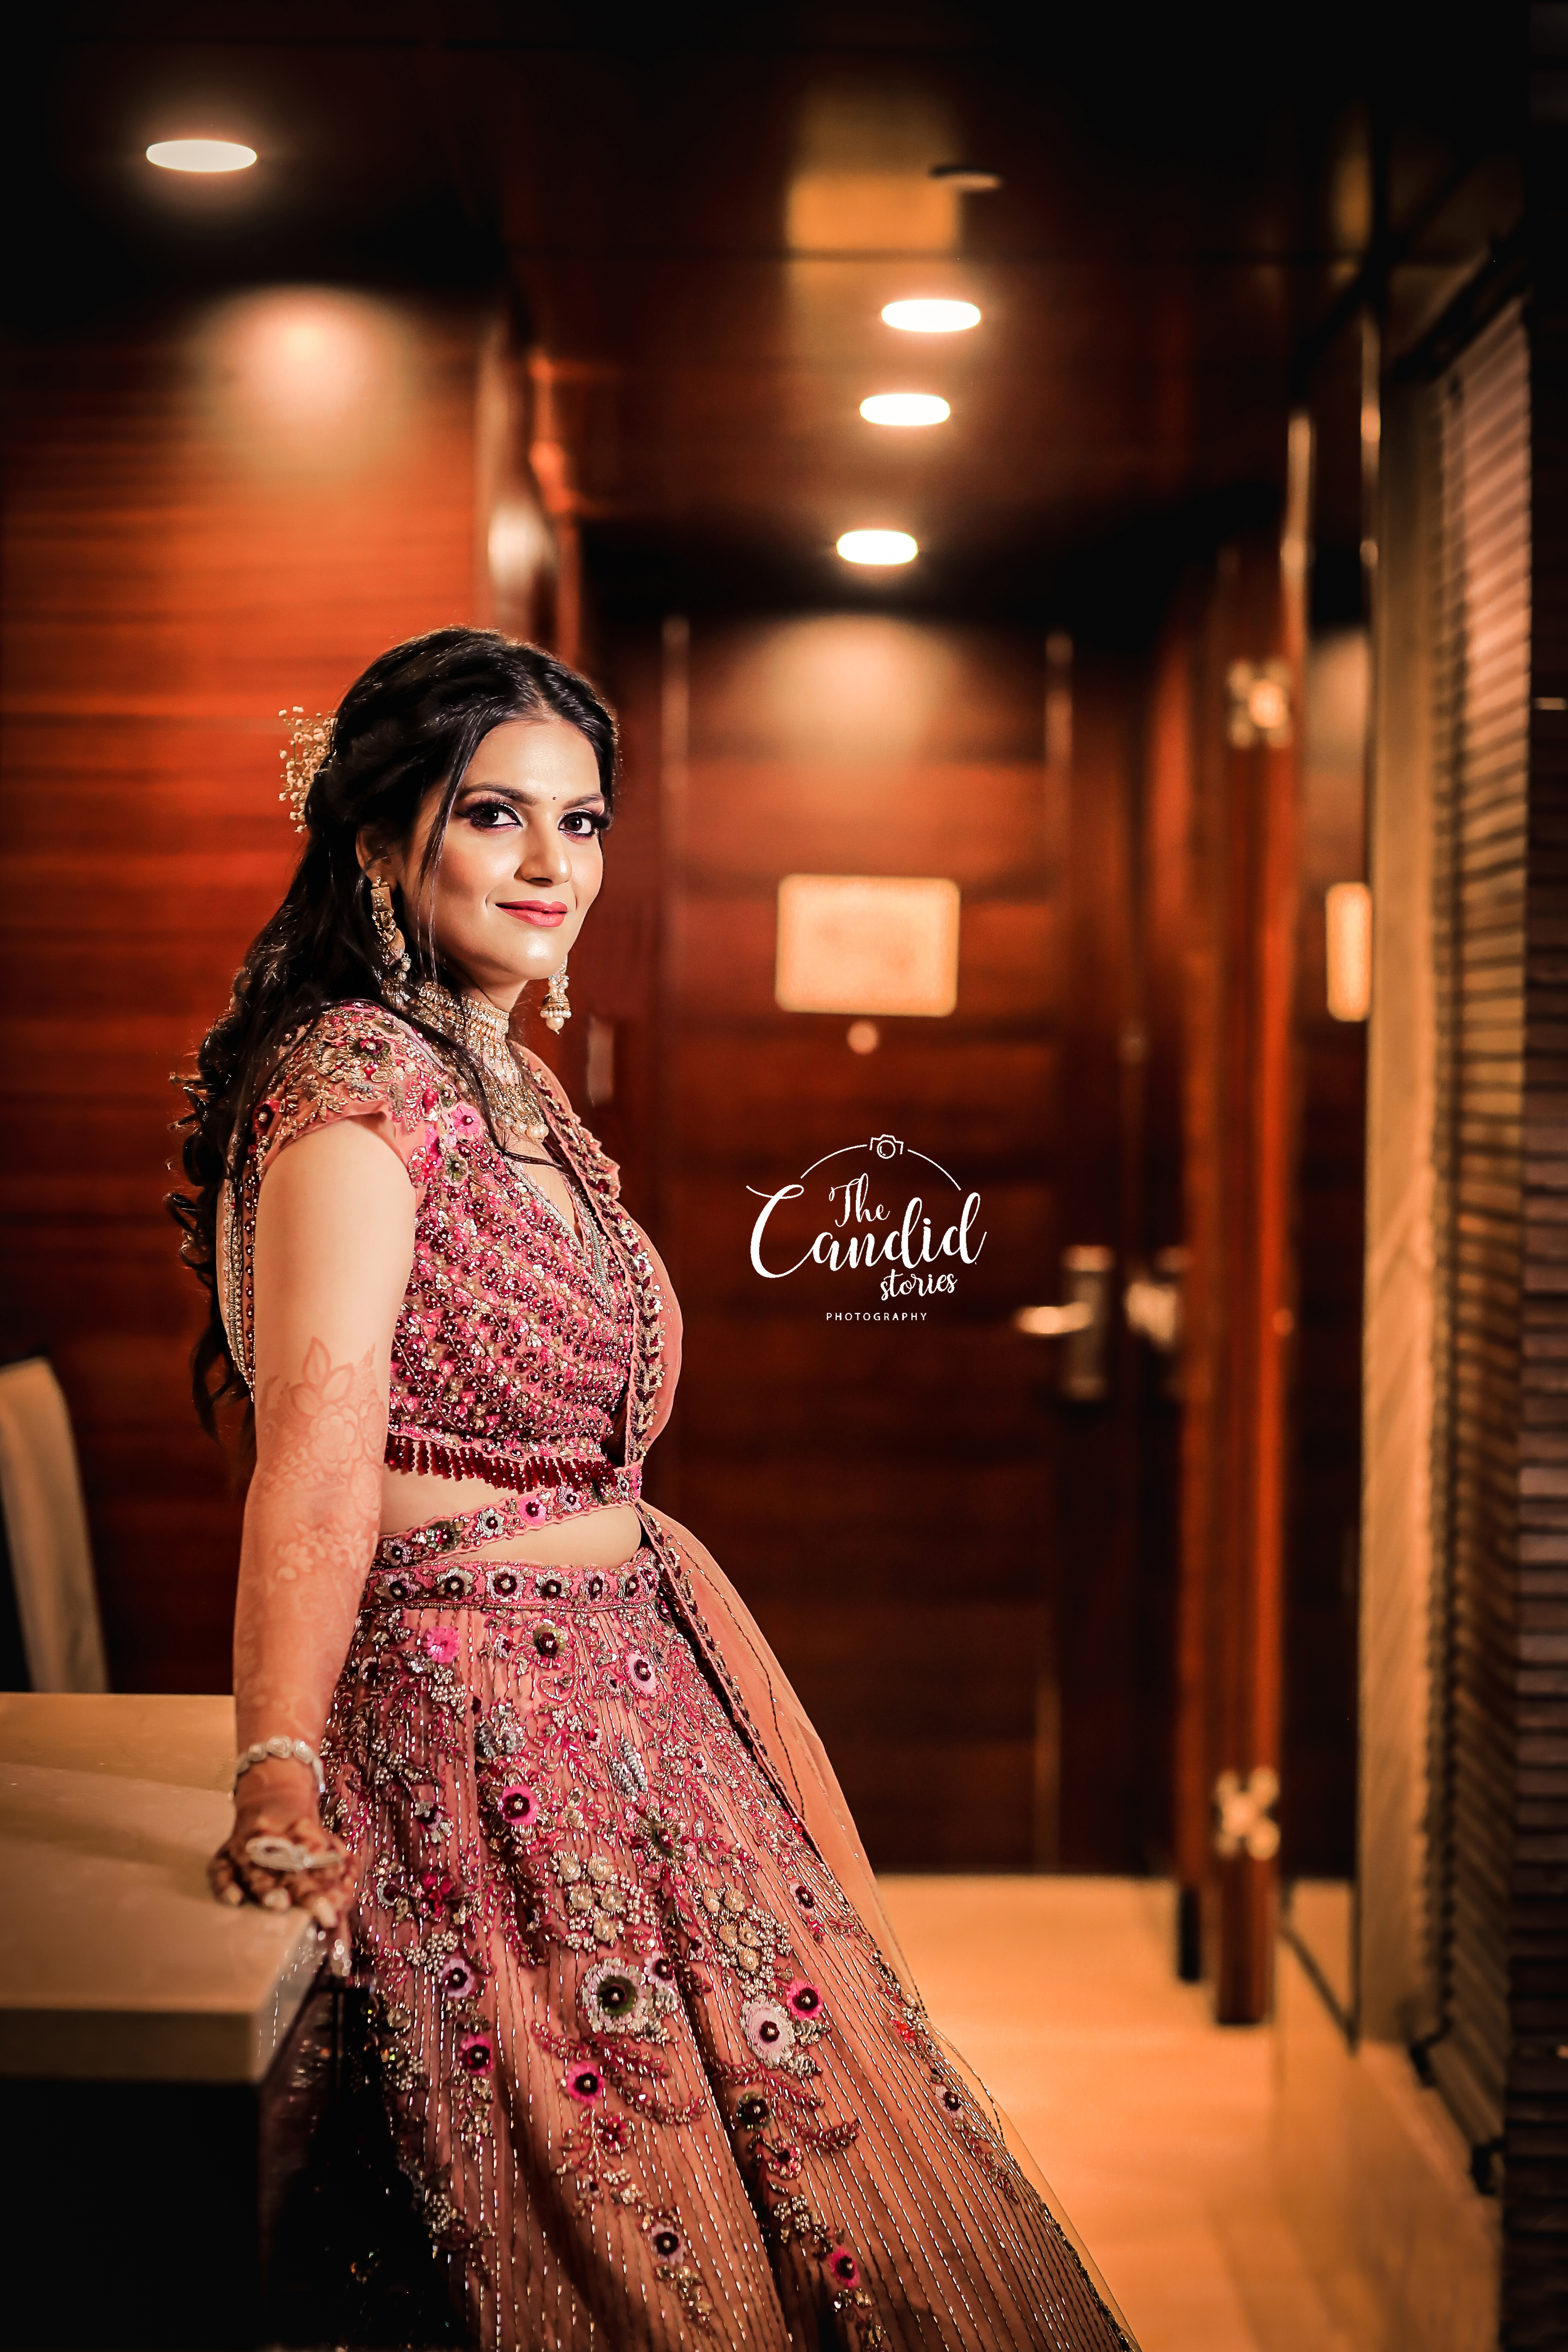 The Candid Stories Photography